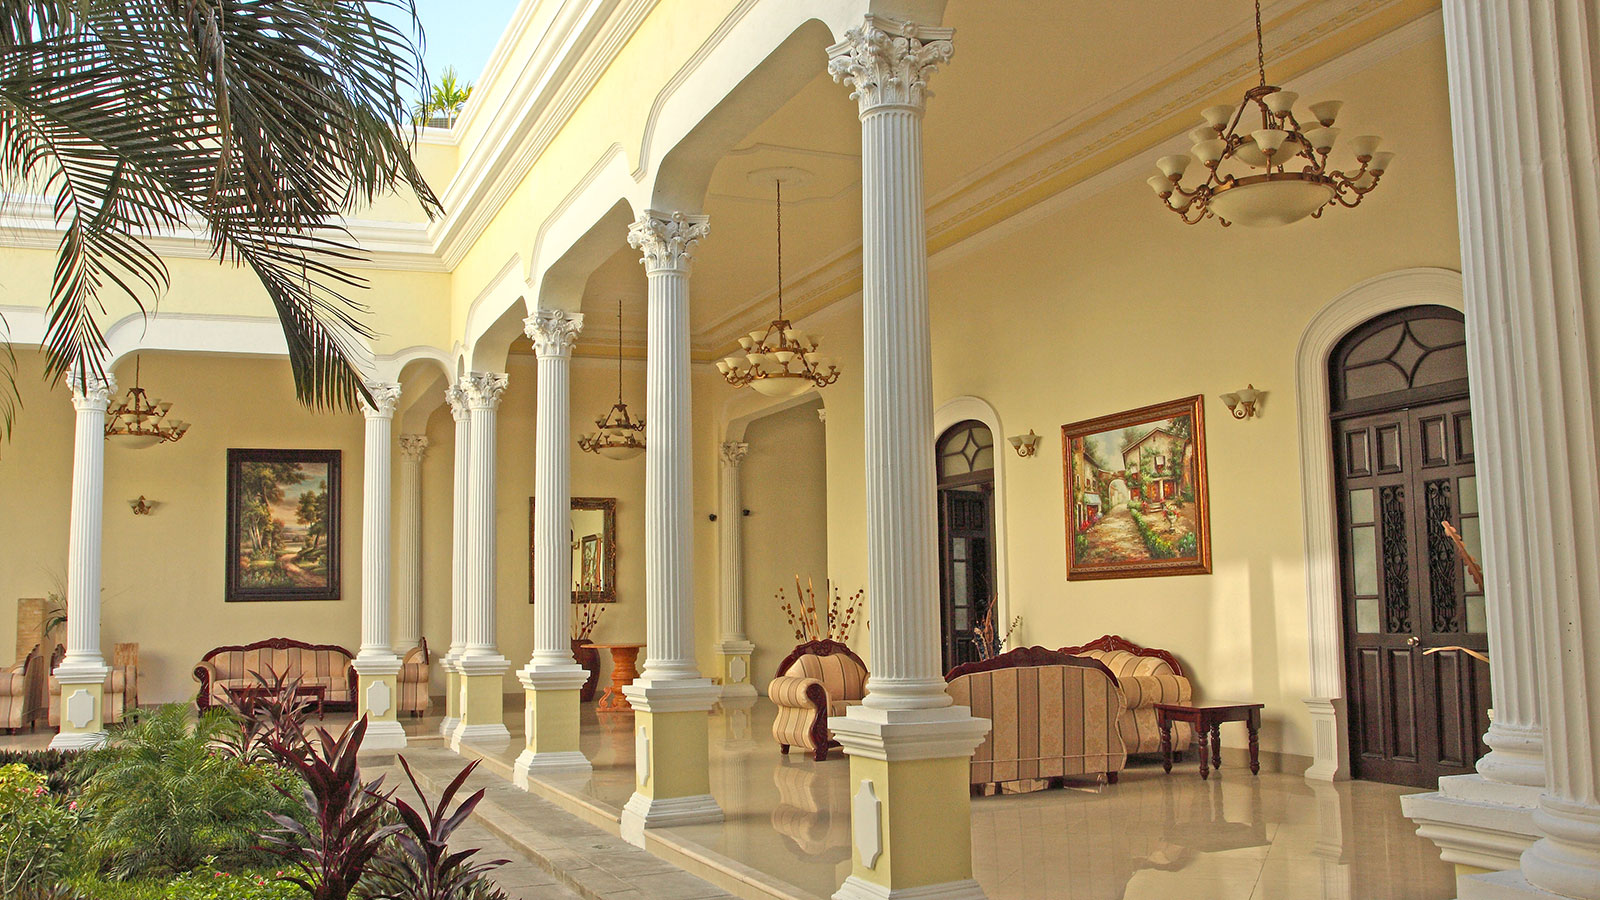 Discover the Spanish Colonial Revival architecture of this terrific historic hotel.